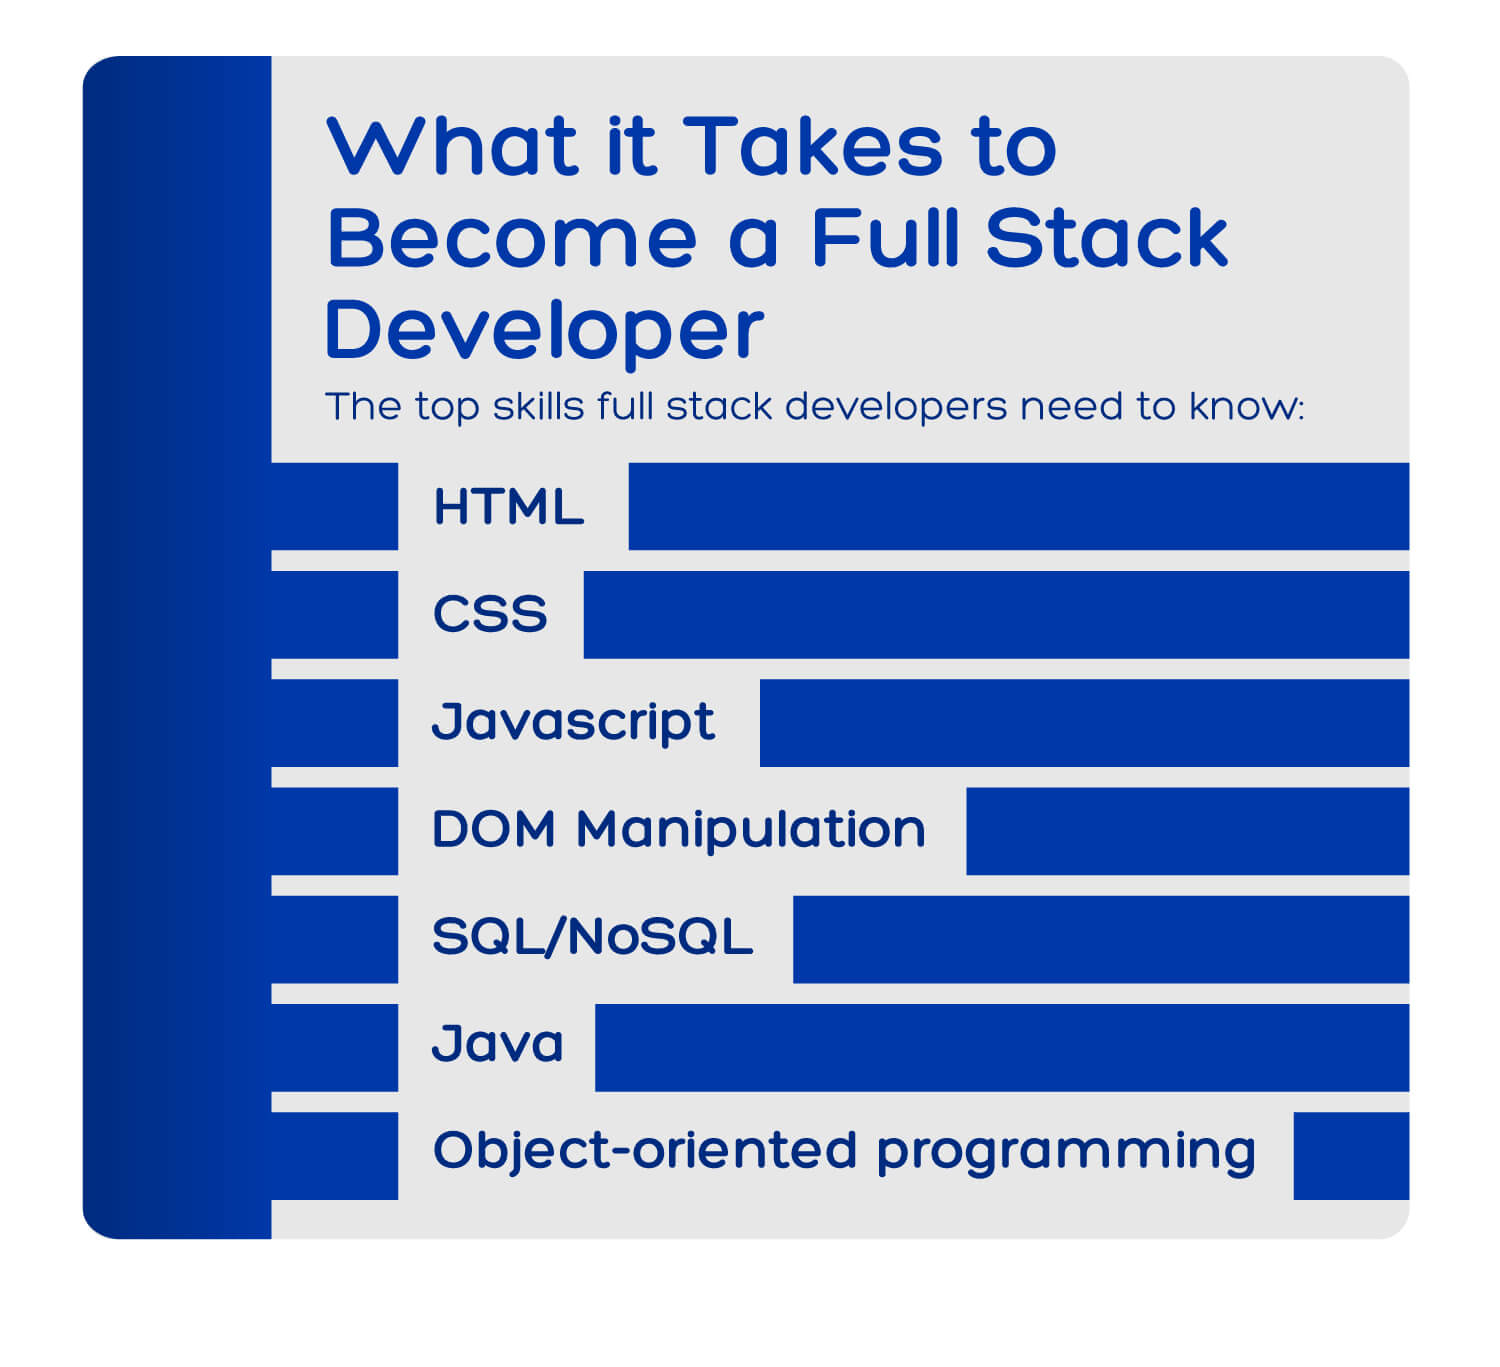 The skills you need to become a full stack developer